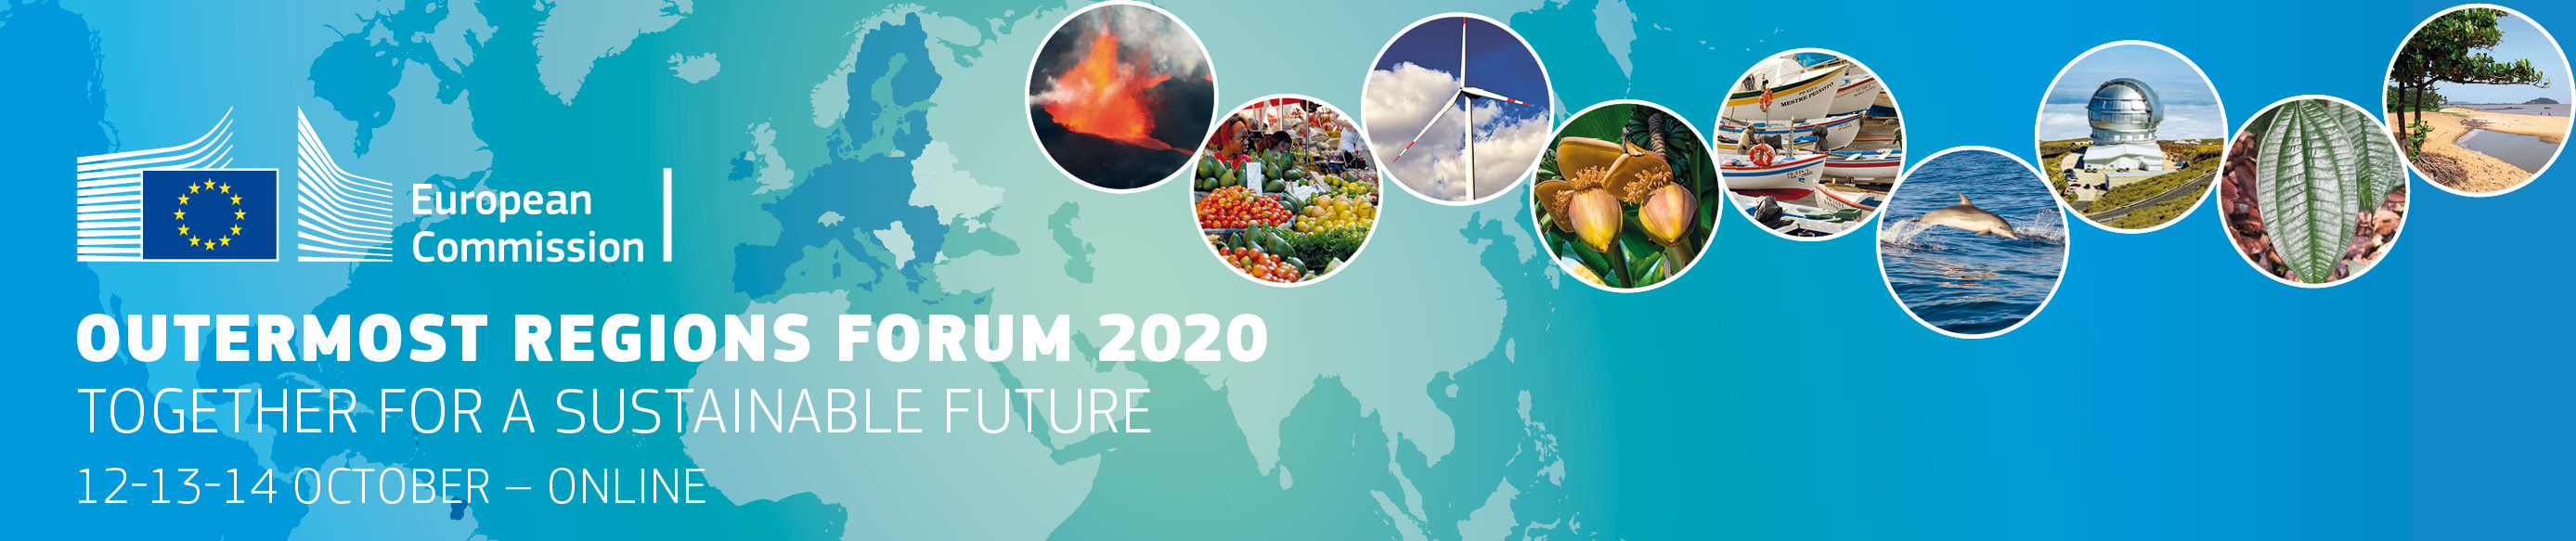 Outermost Regions Forum 2020